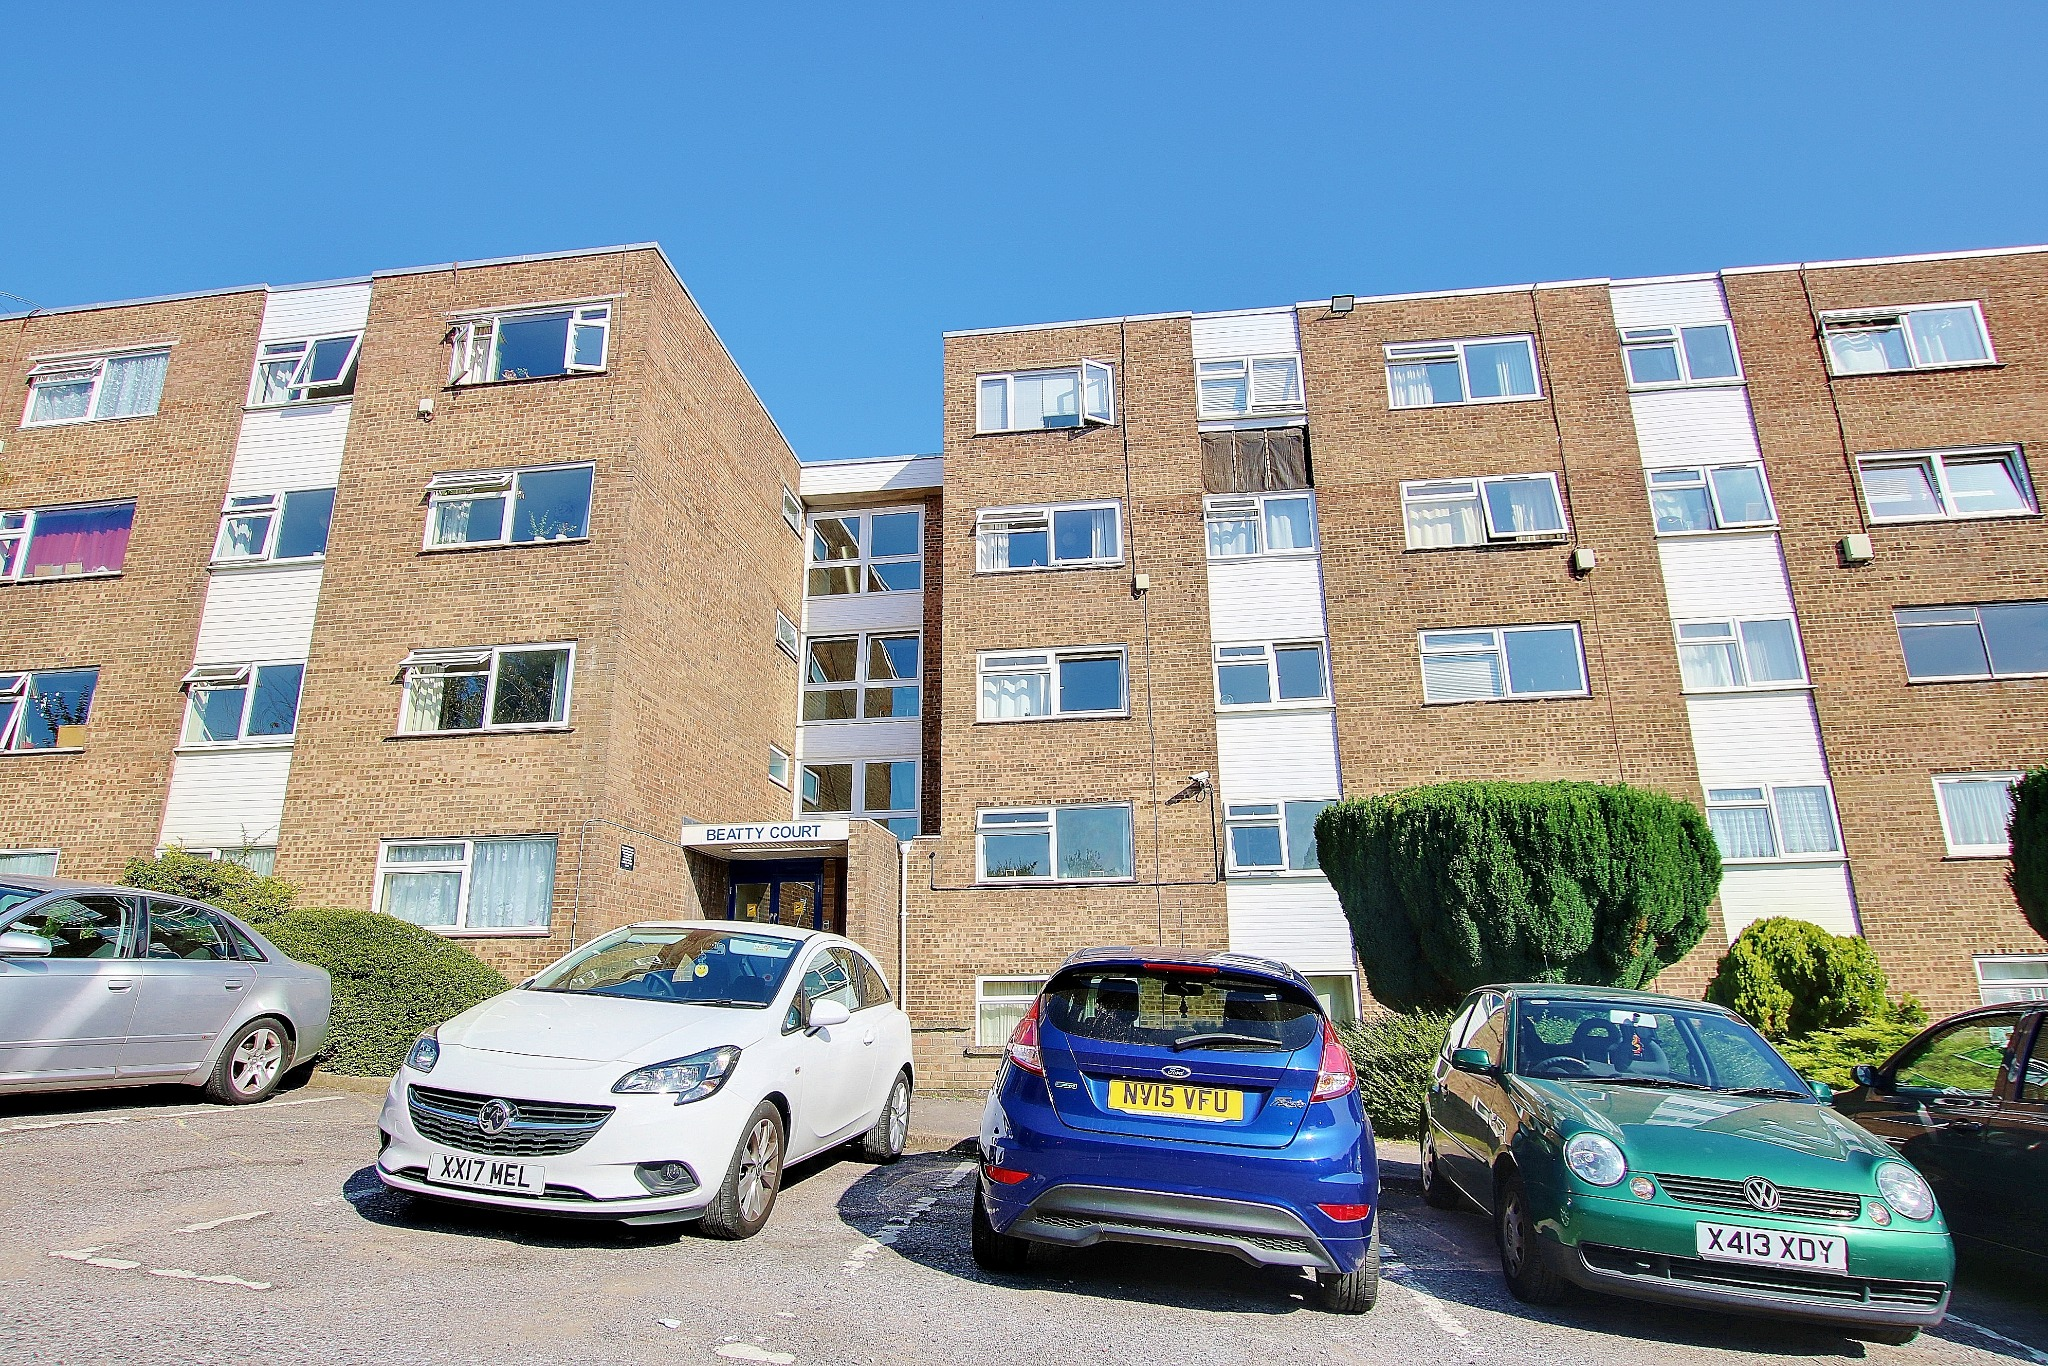 LONG LEASE! WELL PROPORTIONED FLAT! A MUST SEE!